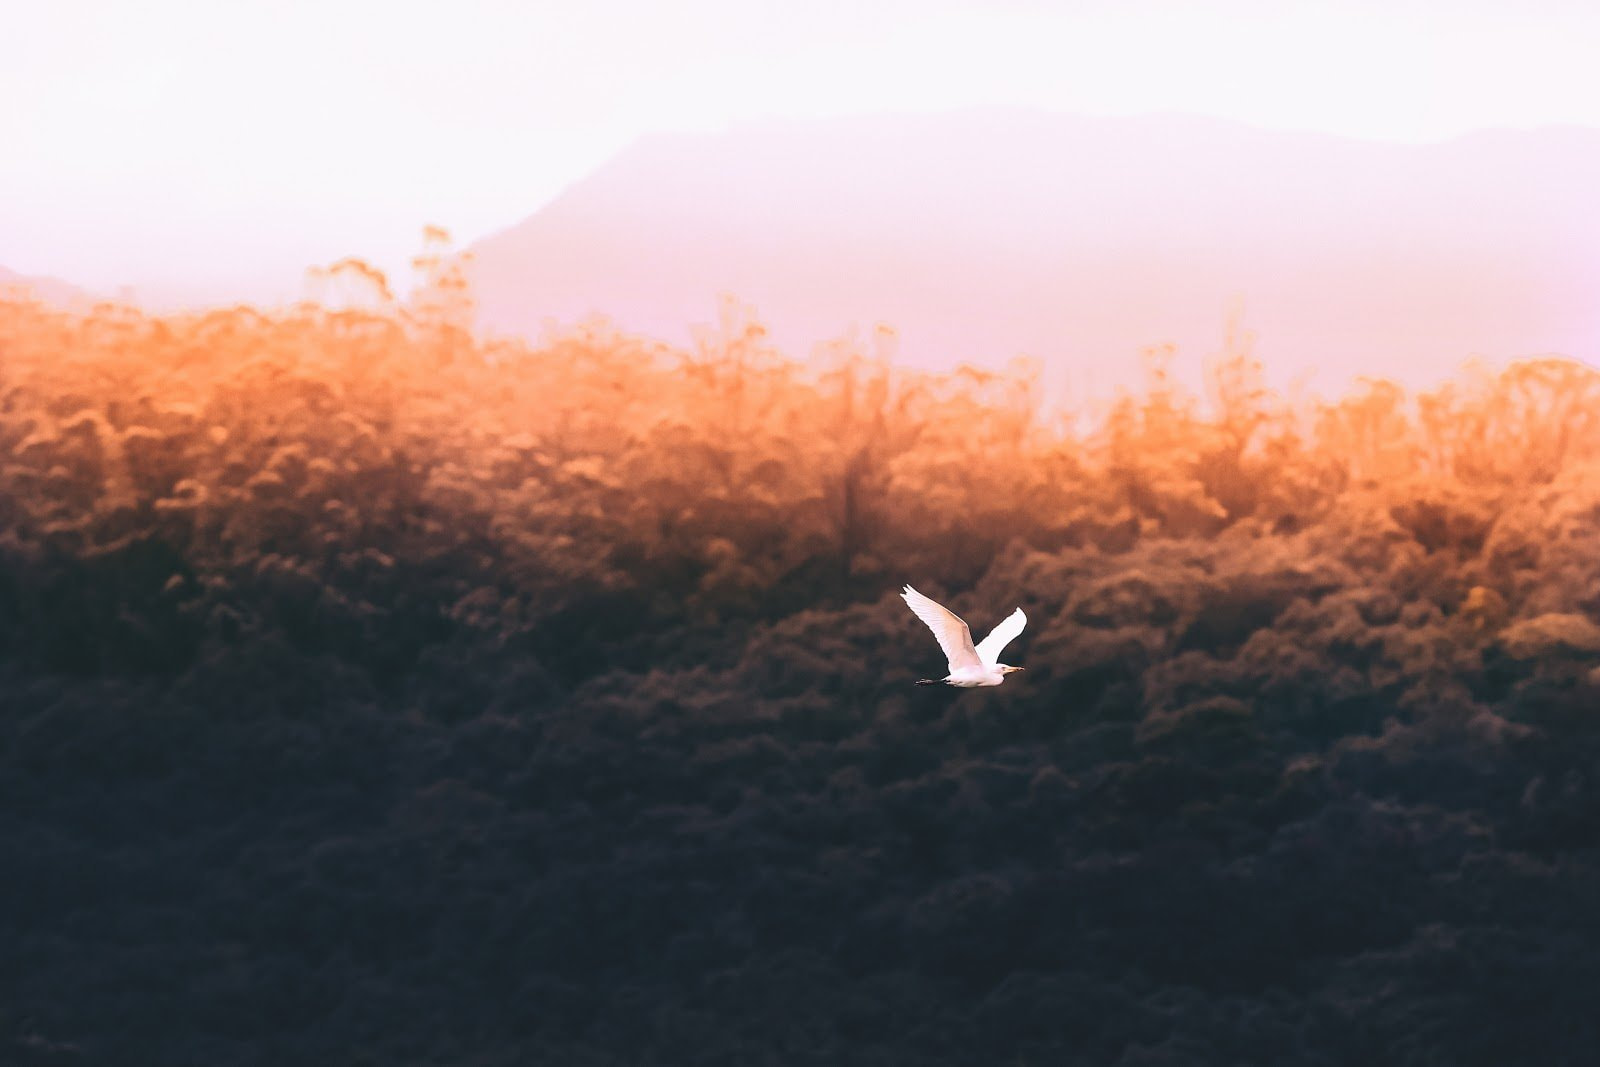 A bird flying over a forest during sunset by Ameen Fahmy